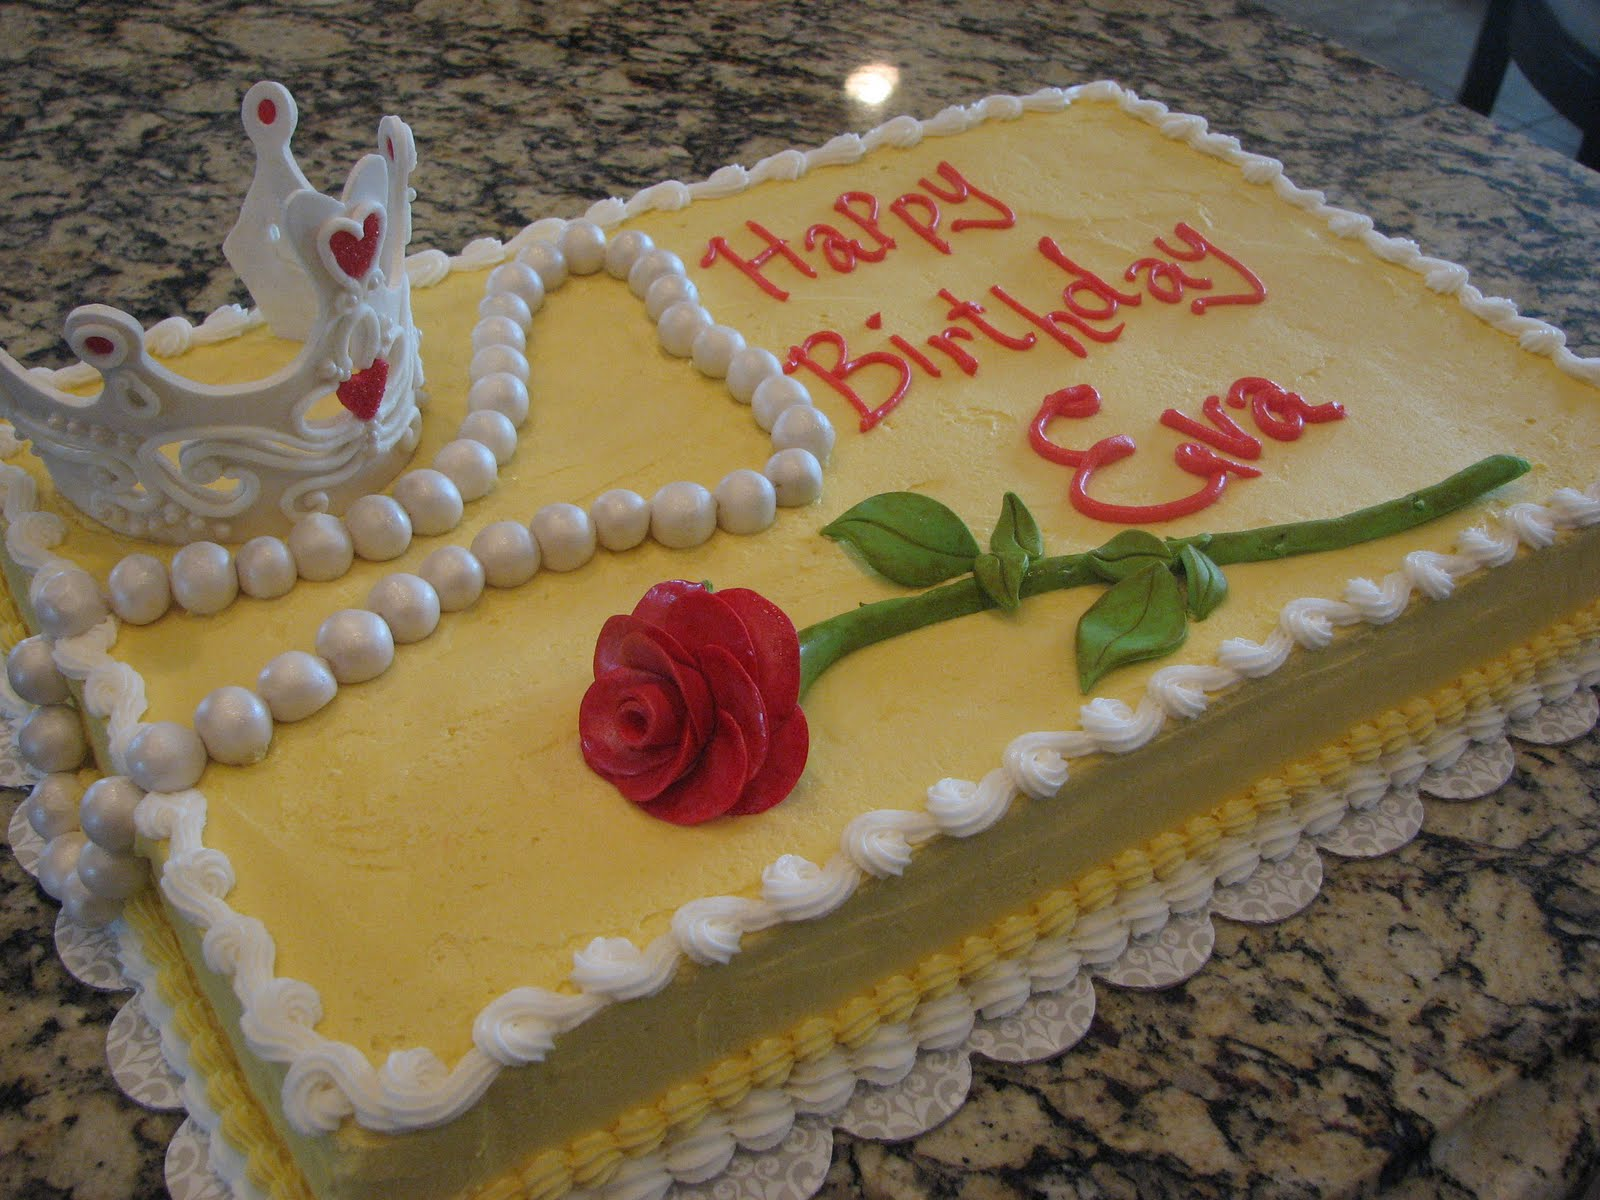 Decadent Designs Evas Princess Belle Birthday Cake